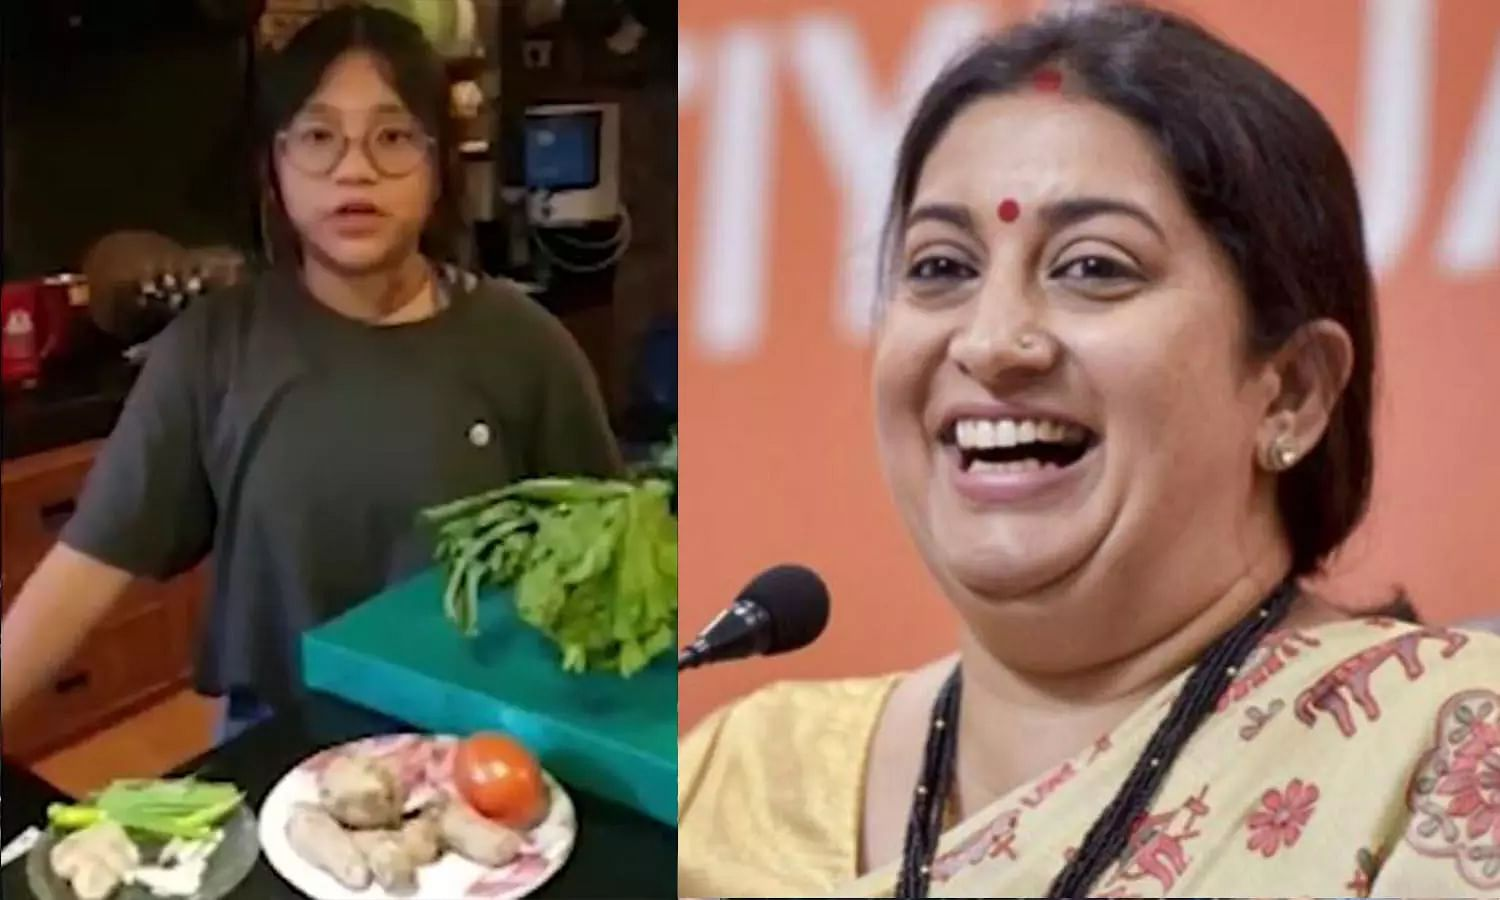 13-year-old chef from Dimapur showcases dish learnt from grandmother; Smriti Irani shares on Twitter